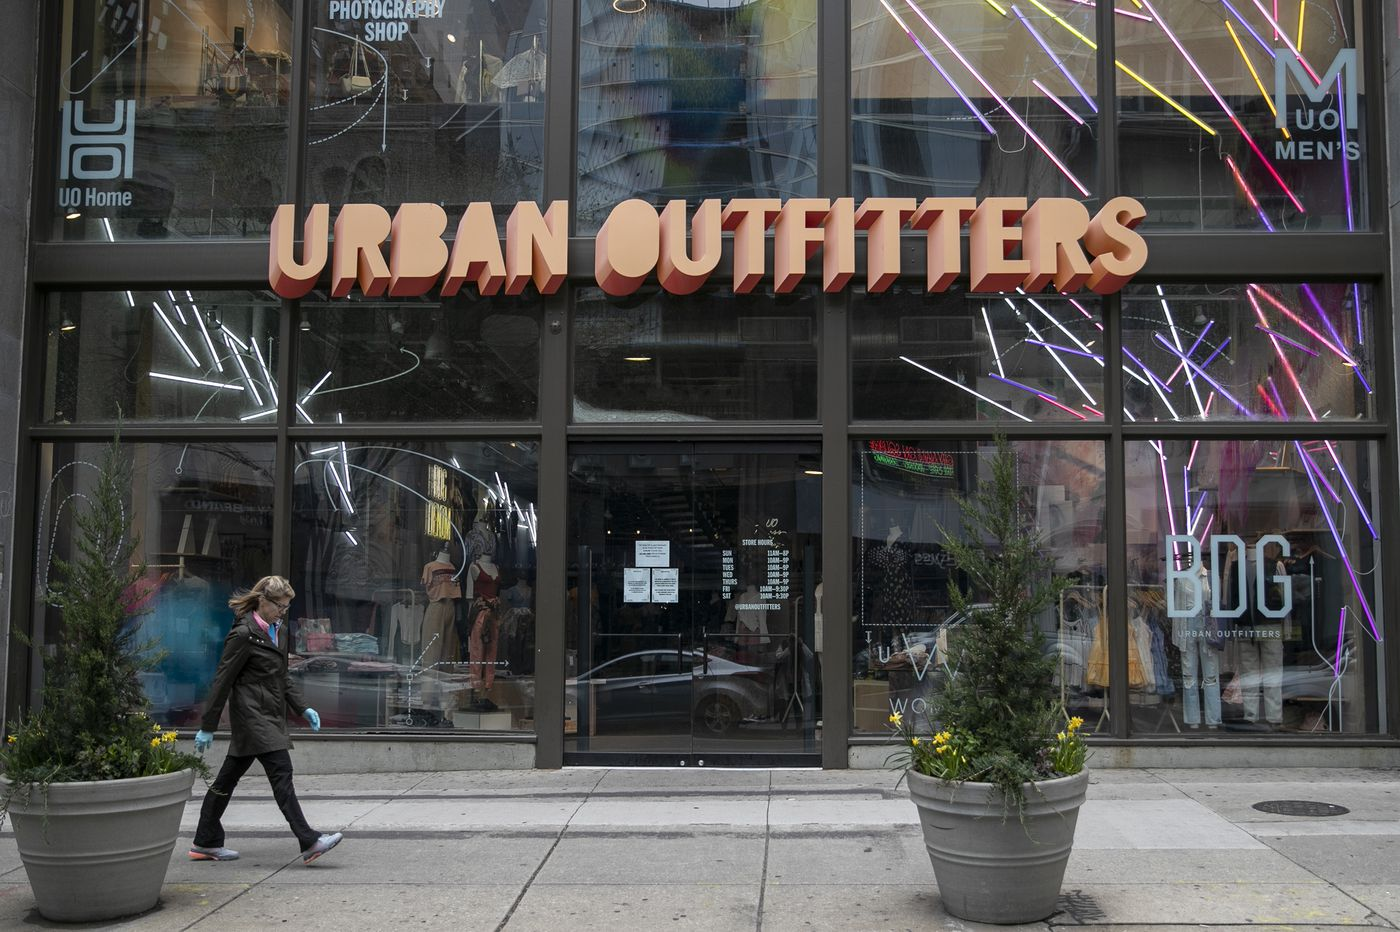 Urban Outfitters shakes up executive ranks heading into the crucial holiday shopping season